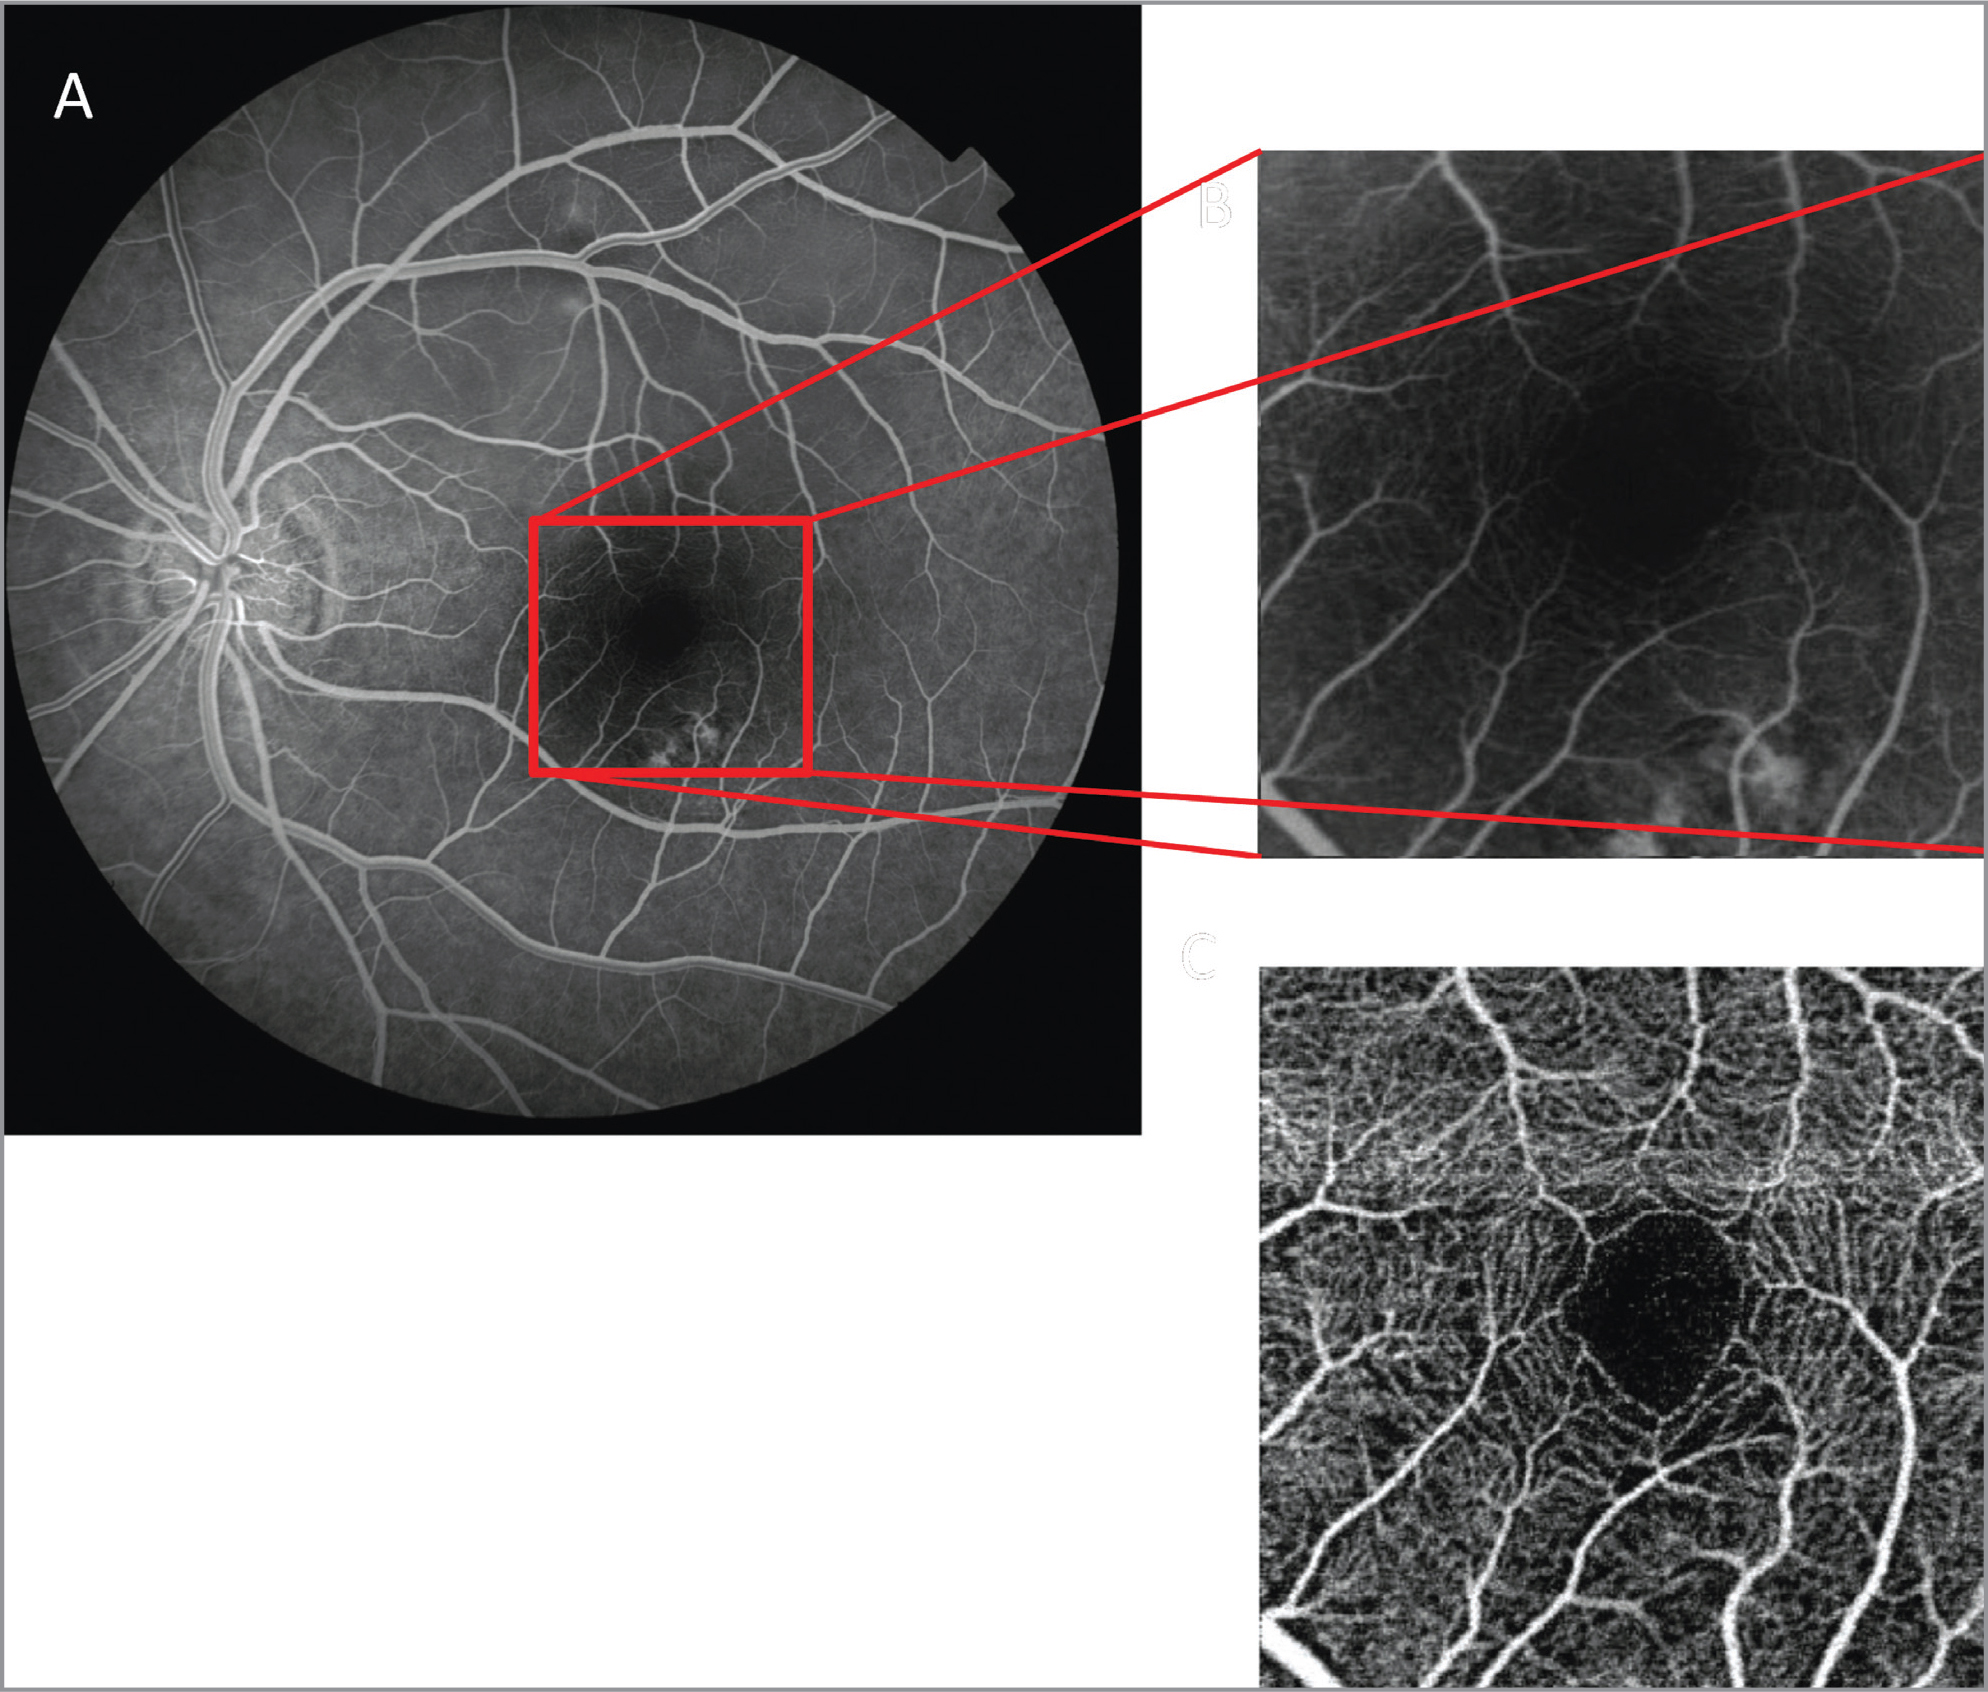 Fundus fluorescein angiography (FFA) image (A) of a study eye. Cropped FFA (B) image around the fovea (shown by the red box in A). Corresponding optical coherence tomography angiography image of the same eye centered on the fovea (C).